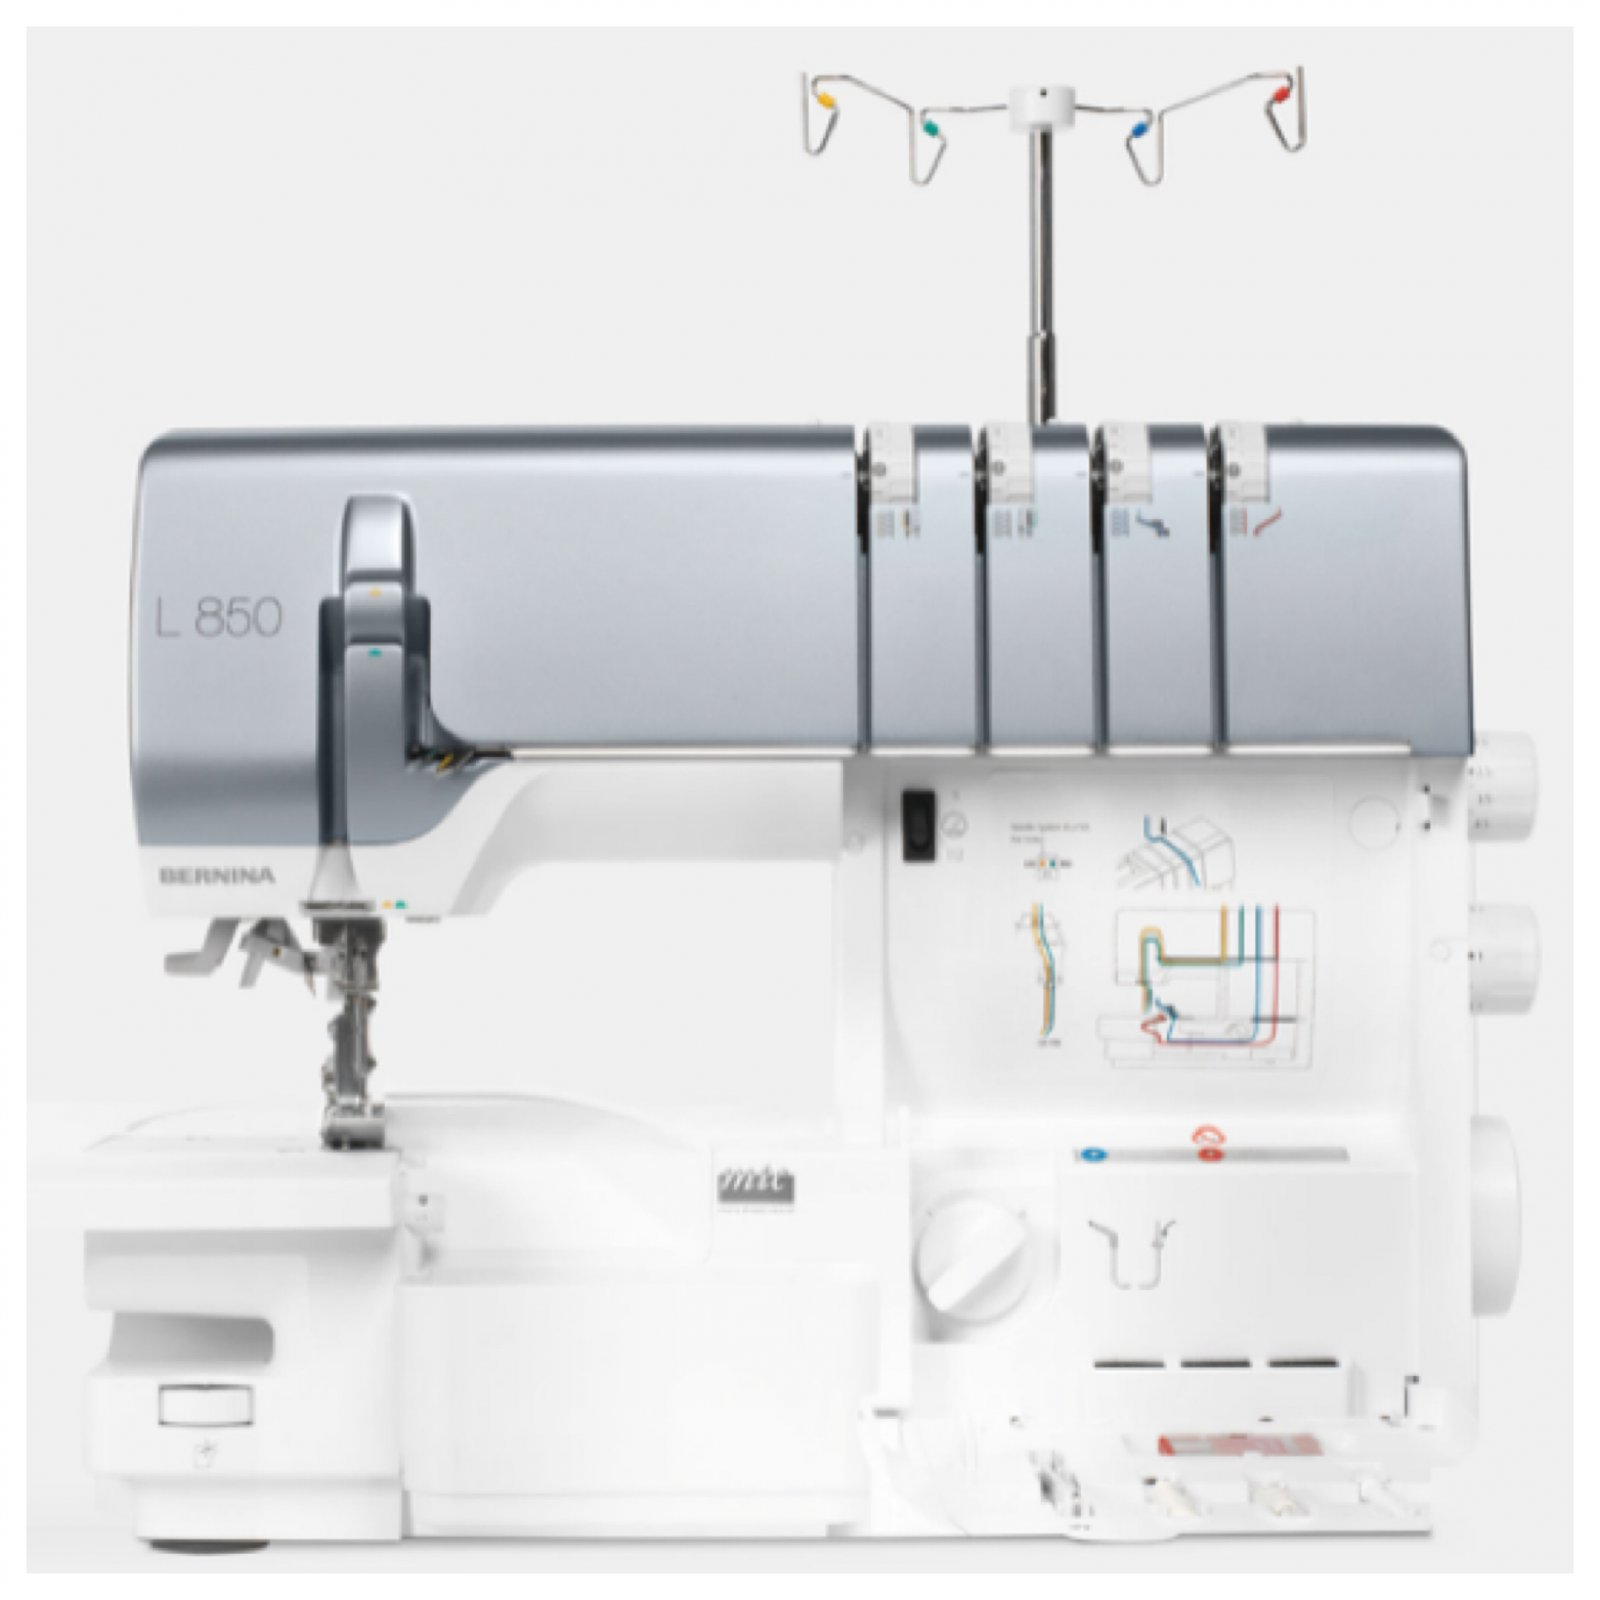 Bernina L850 MSRP $4,499.00